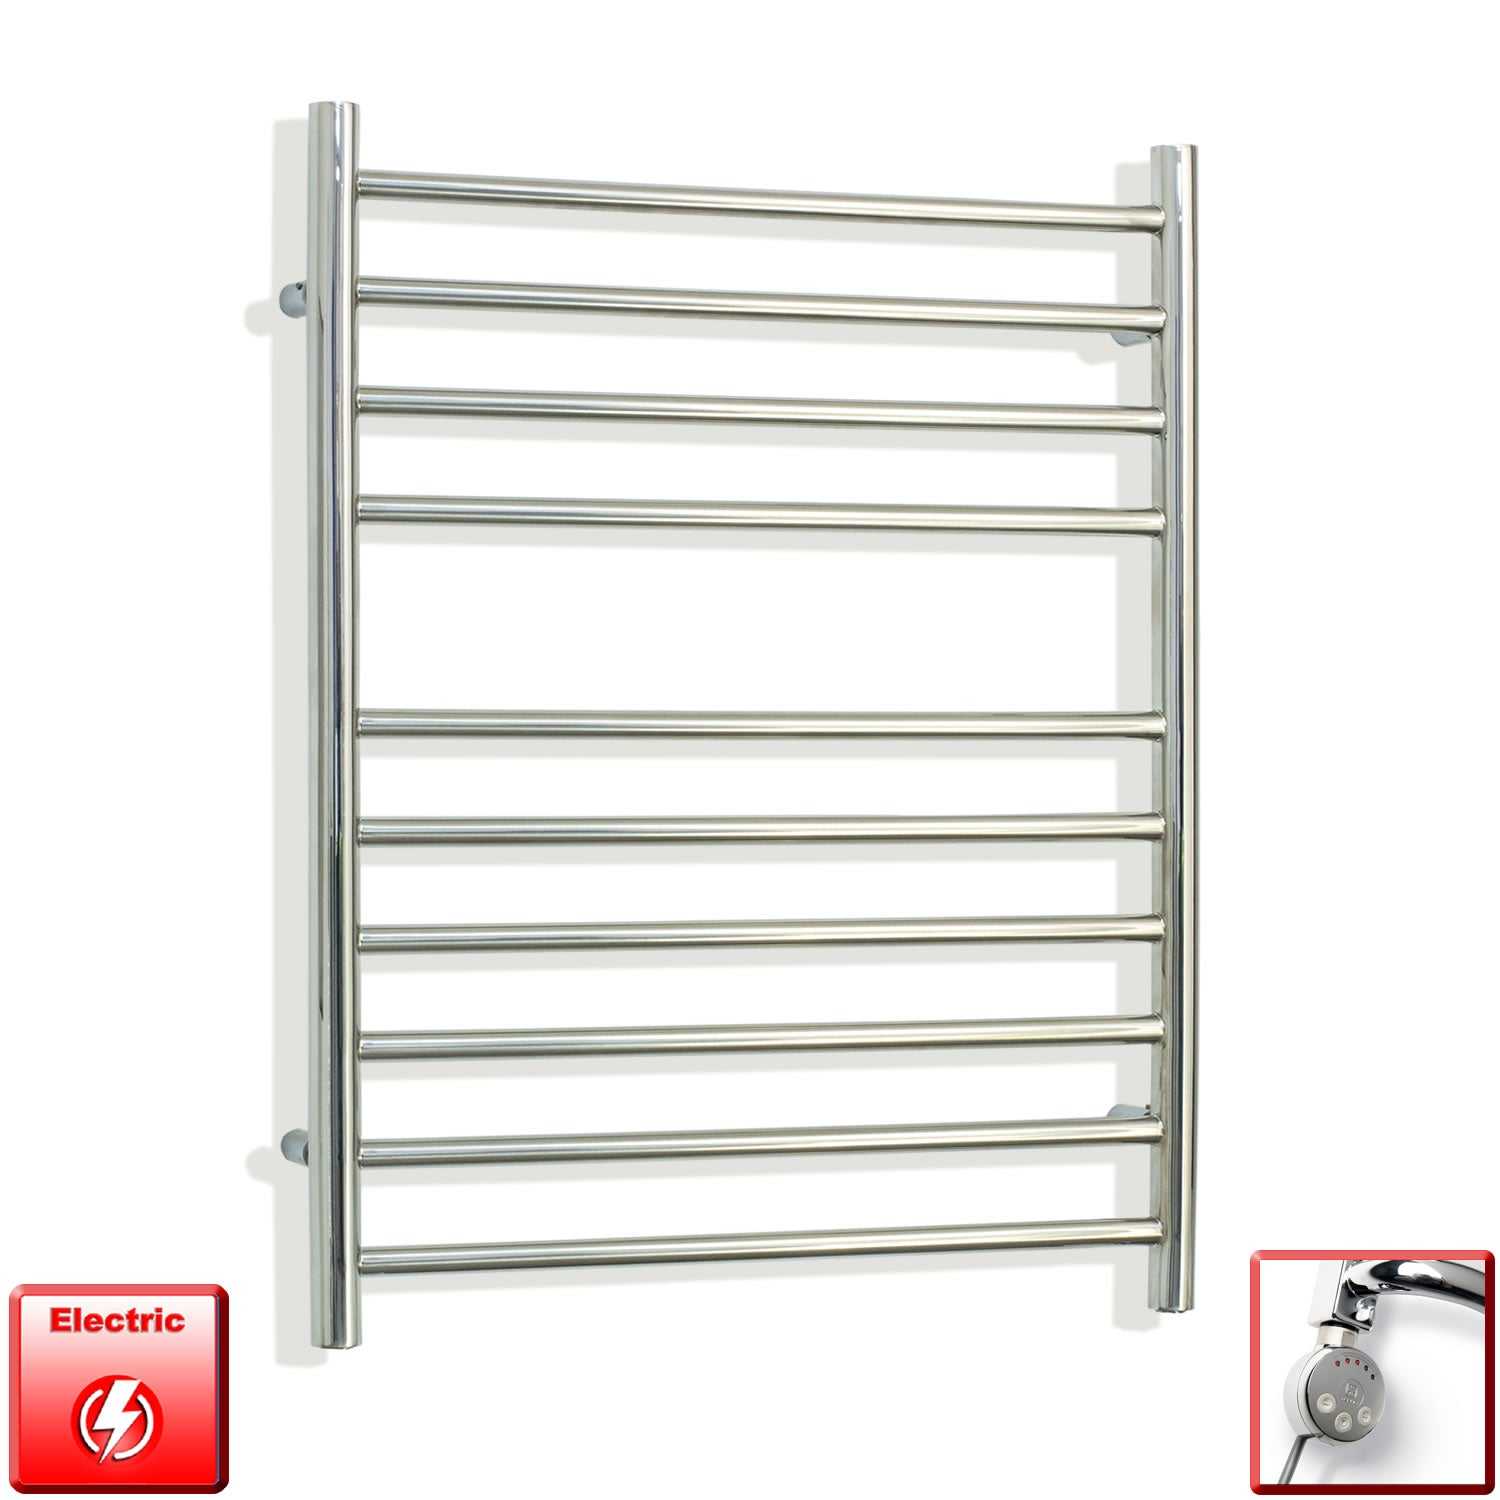 750 mm High 500 mm Wide Pre-Filled Electric Stainless Steel Heated Towel Rail Radiator meg thermostatic heating element